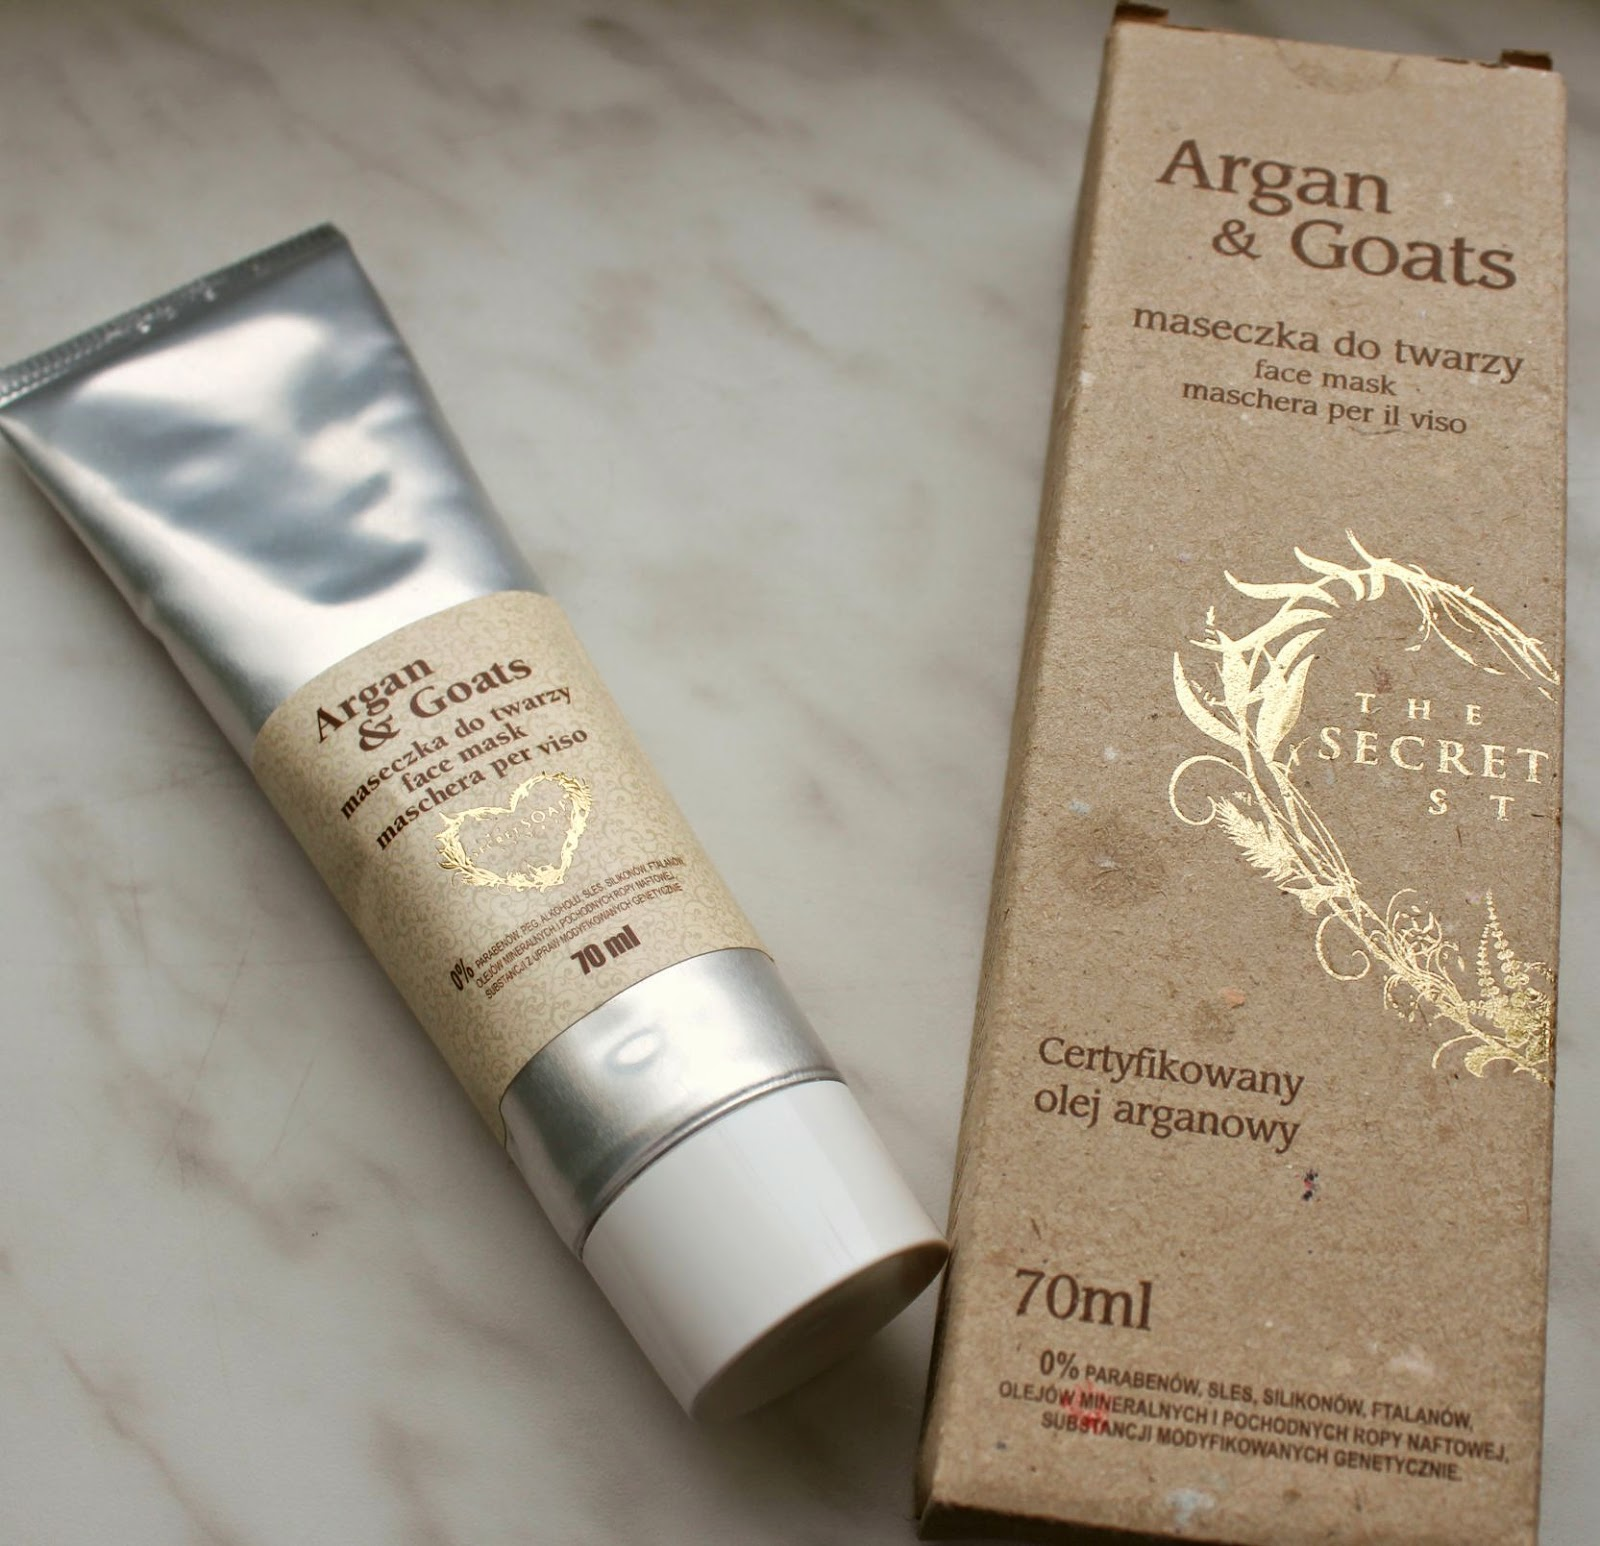 maseczka do twarzy Argan & Goats – The Secret Soap Store